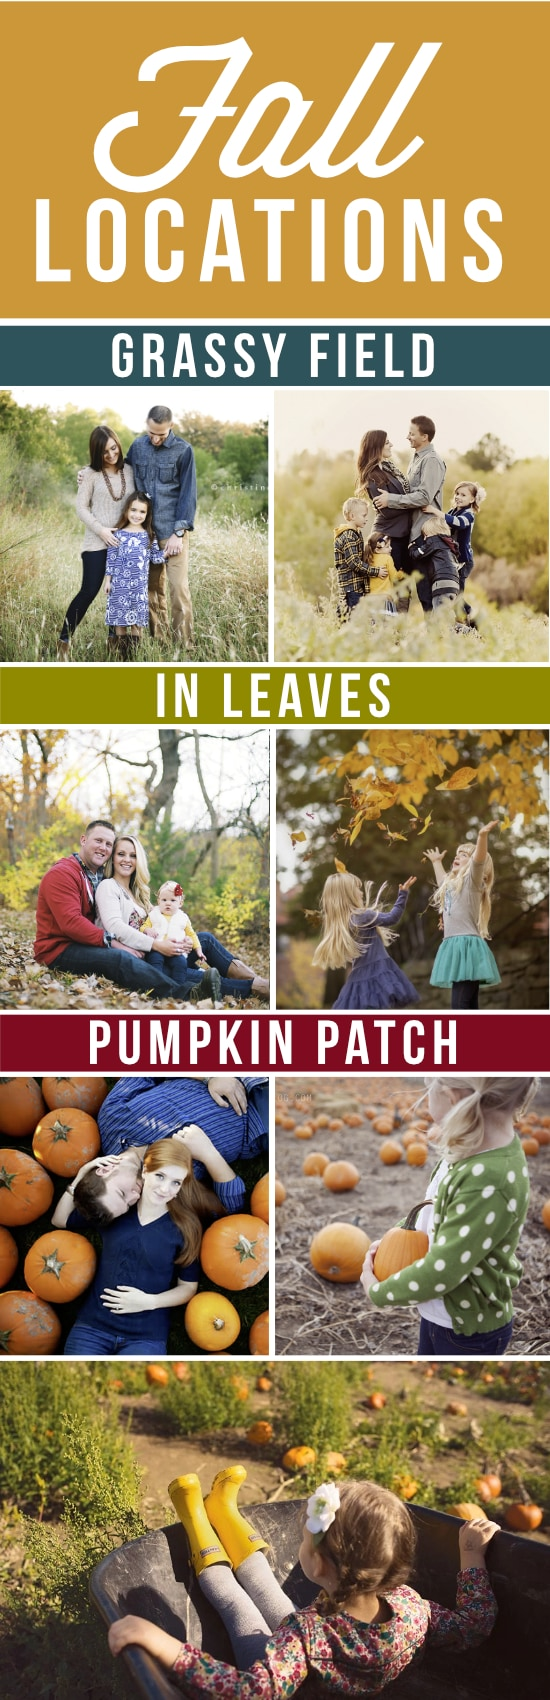 Locations for Fall Pictures